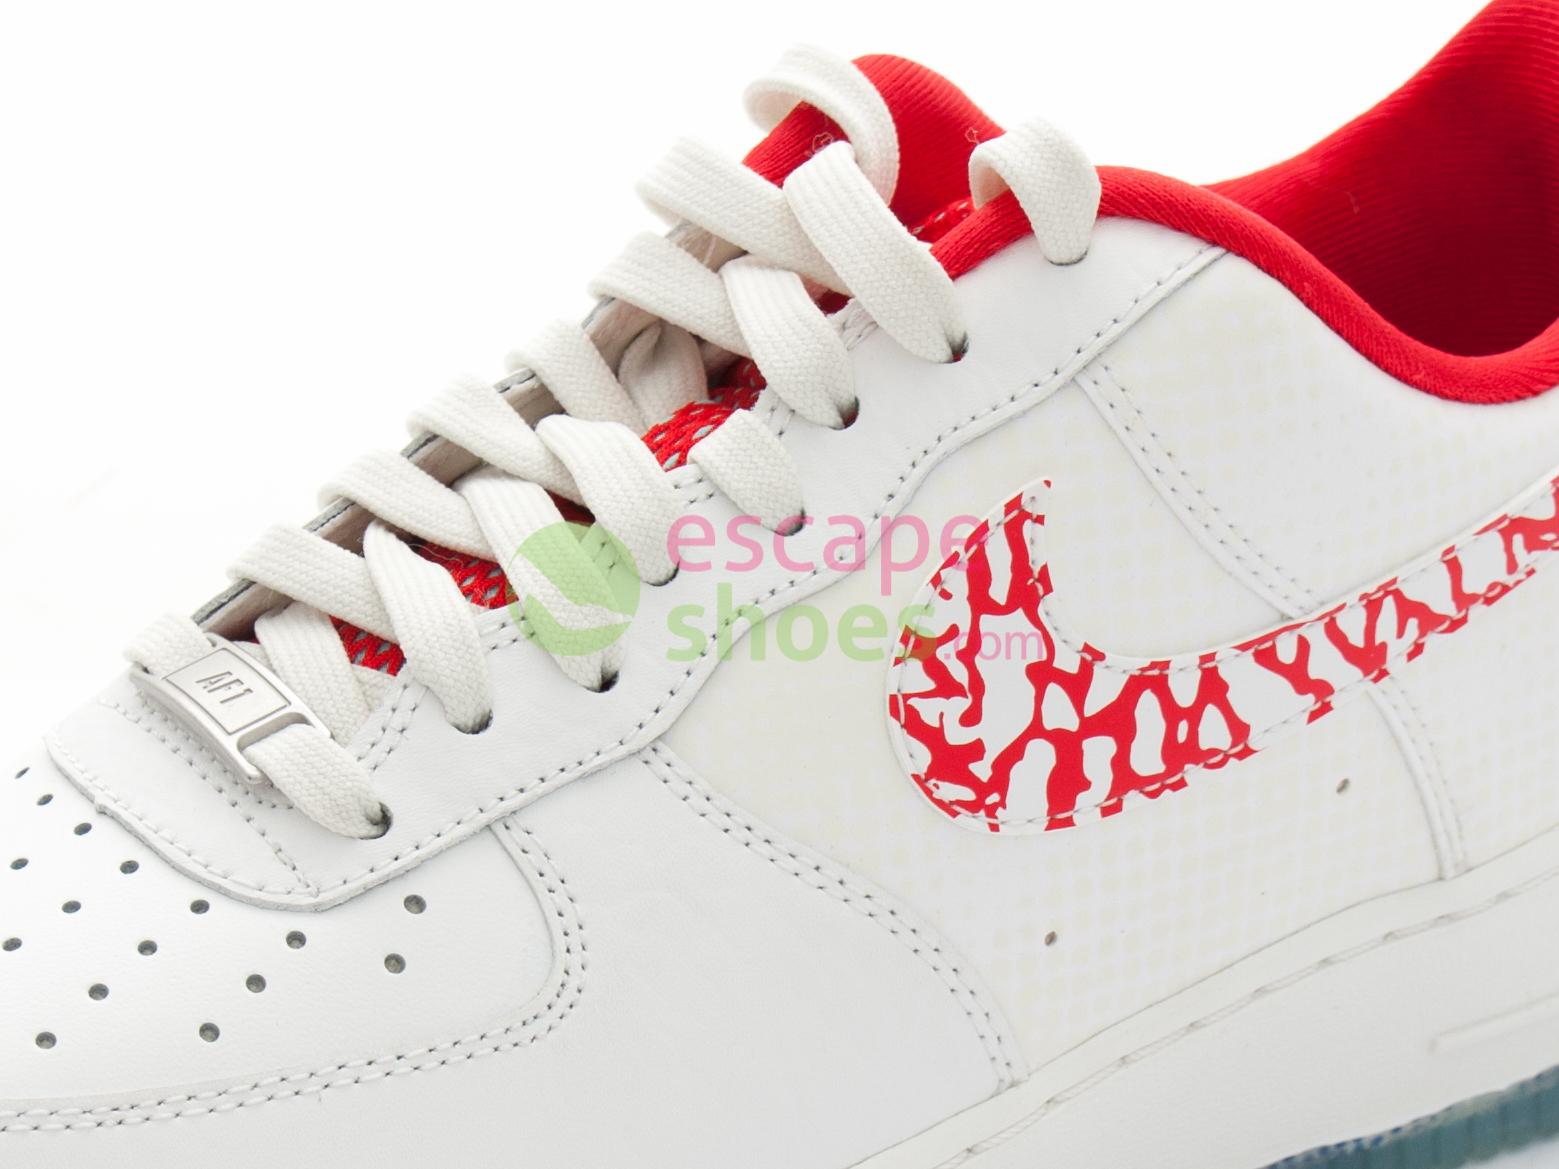 NIKE Air Force 1 Low Cmft Prm 579941 161